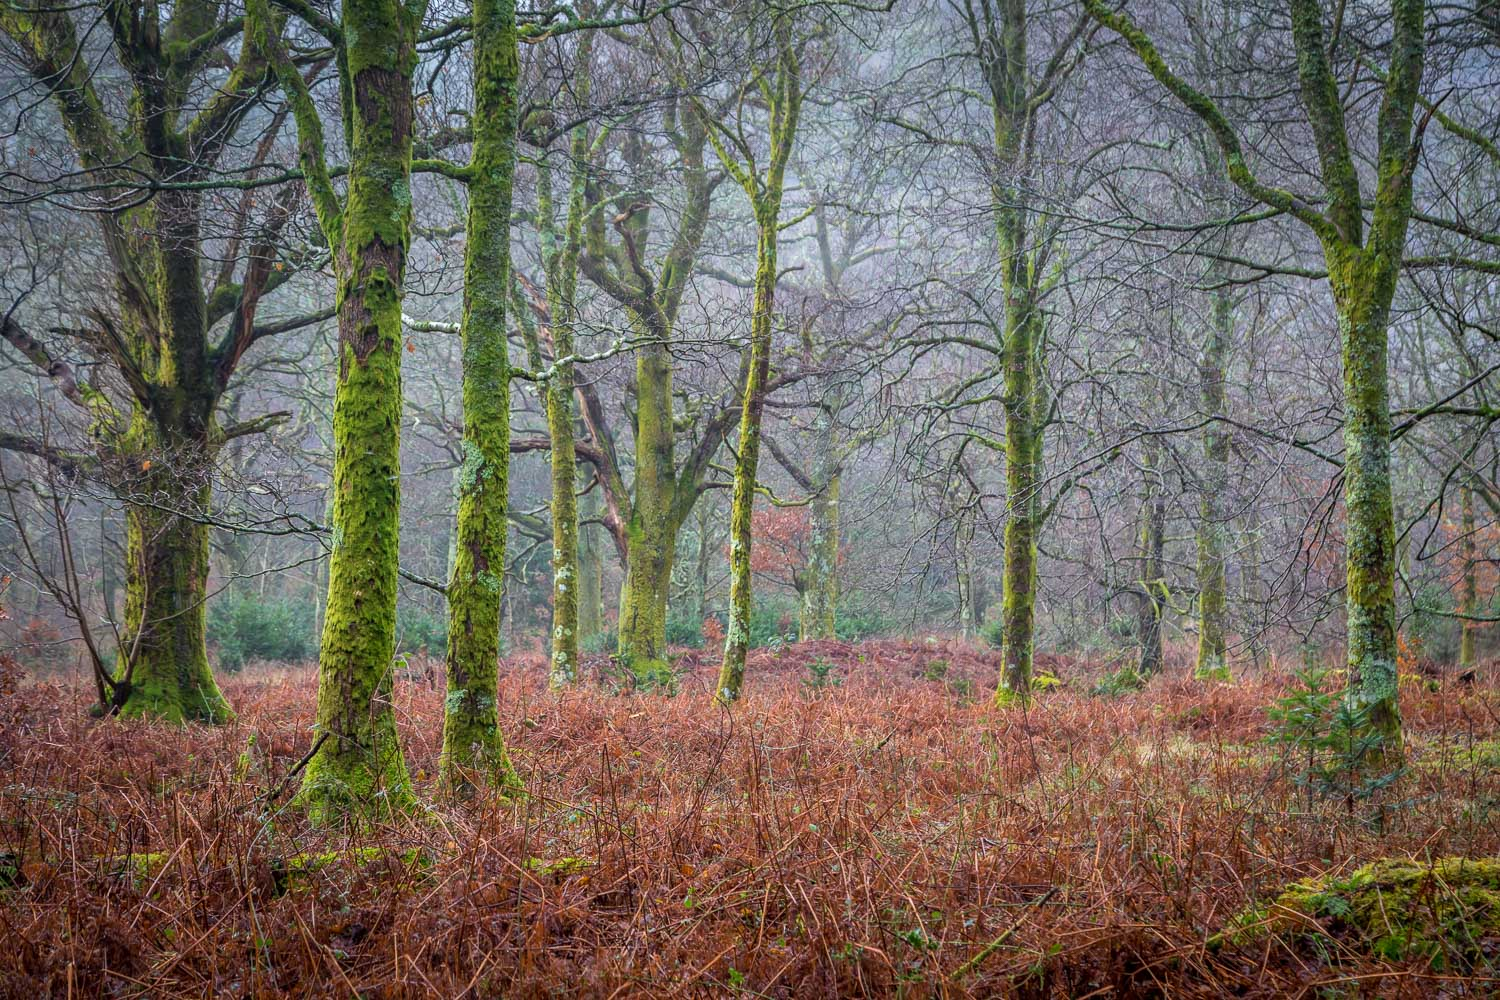 Holme Wood, Loweswater